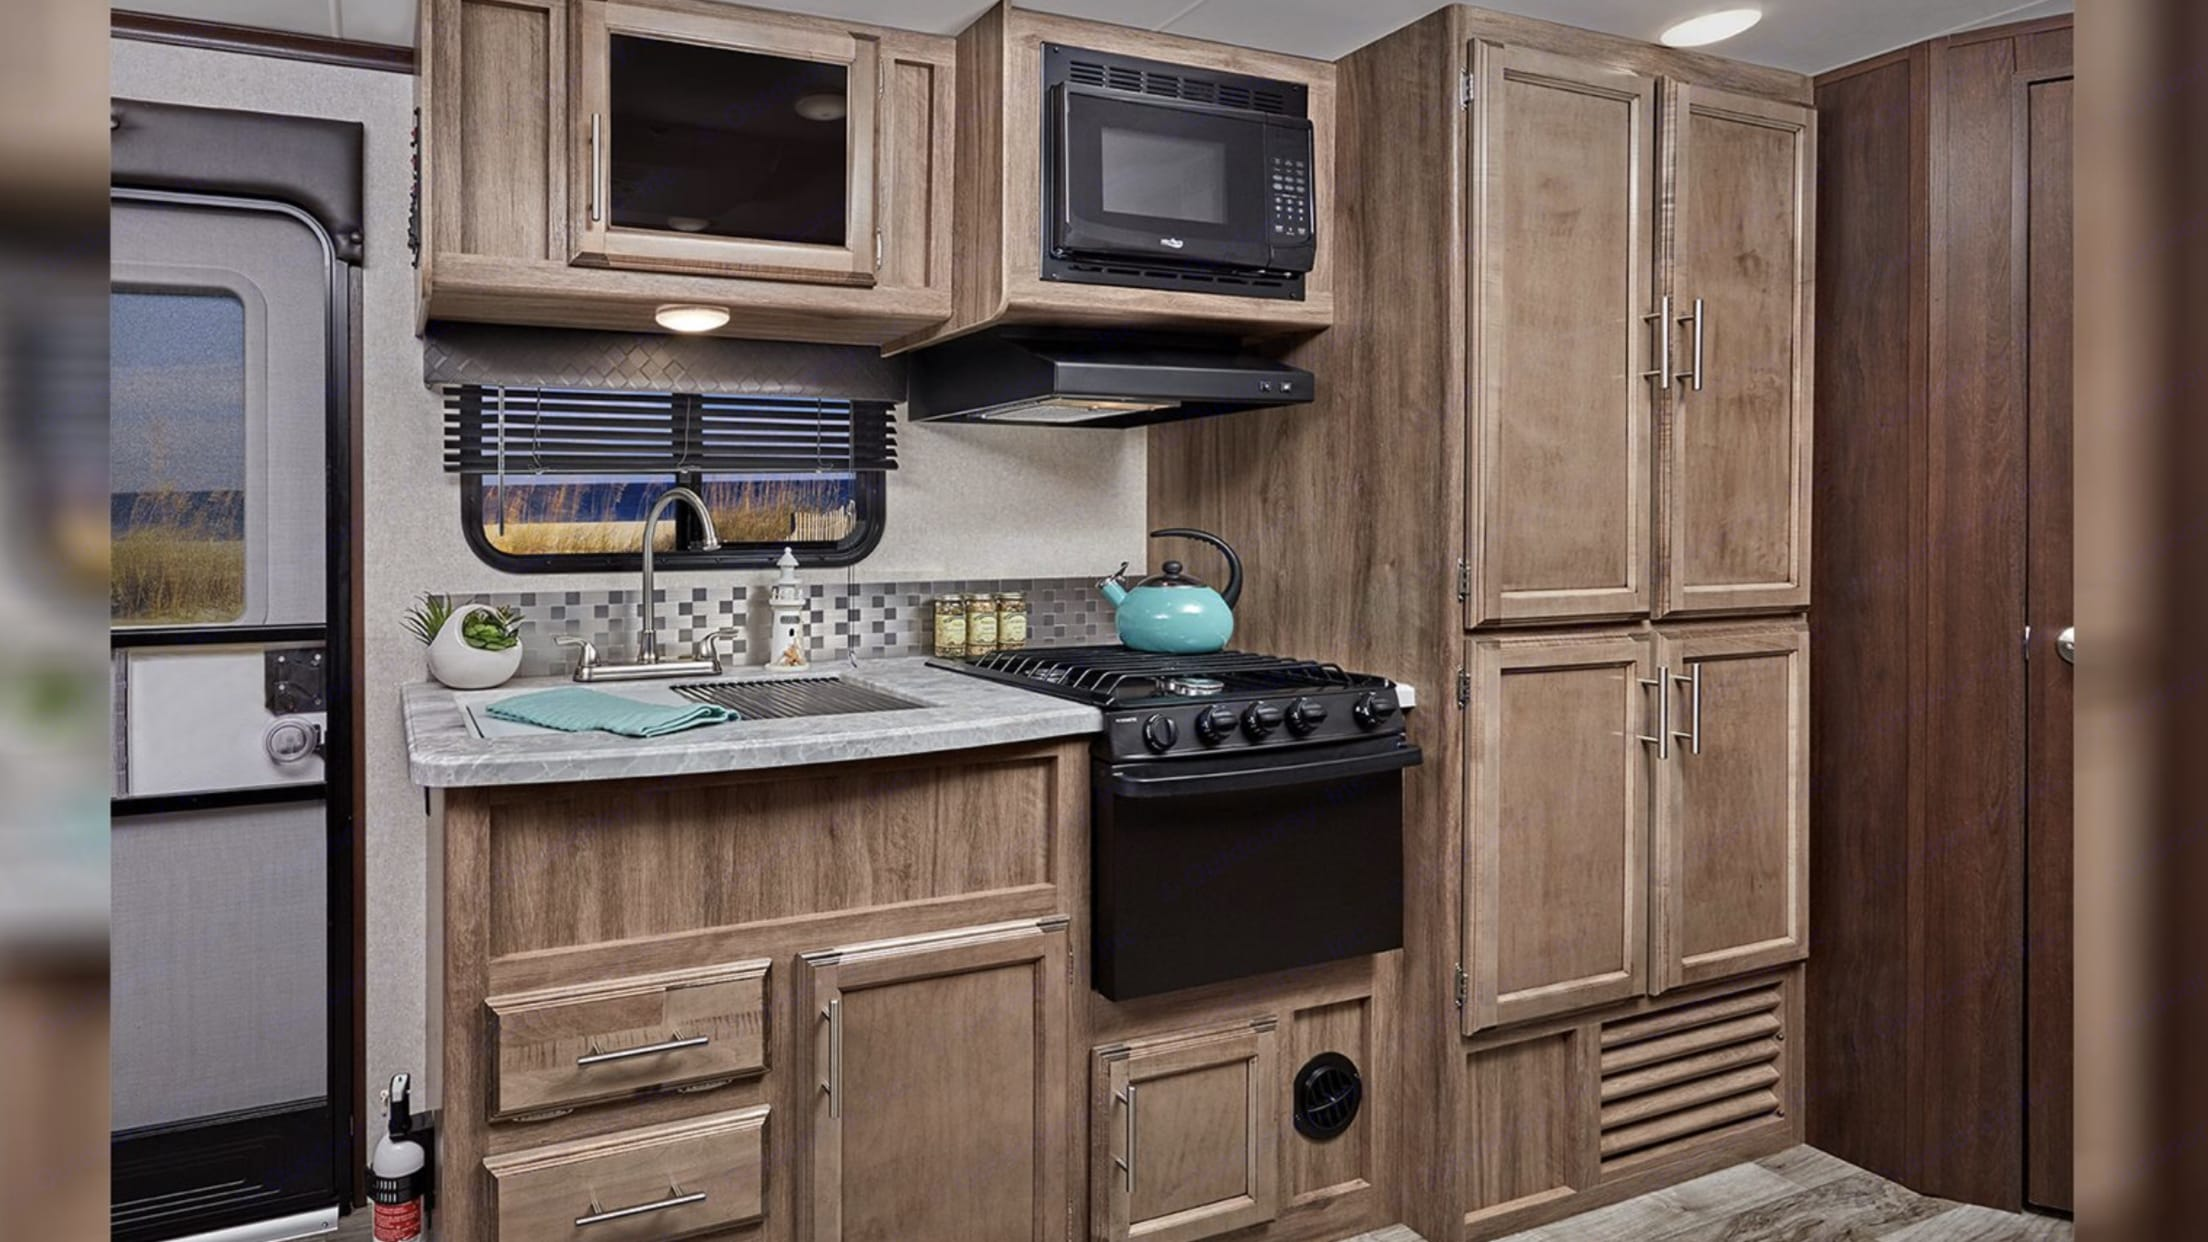 All you need to cook all your meals! Plenty of dishes,bowls, platters, glasses, silverware and every utensil you need. Coffee maker, toaster, electric griddle to outside to make the perfect pancake!  Storage for all your food.  . Jayco Jay Feather 2019